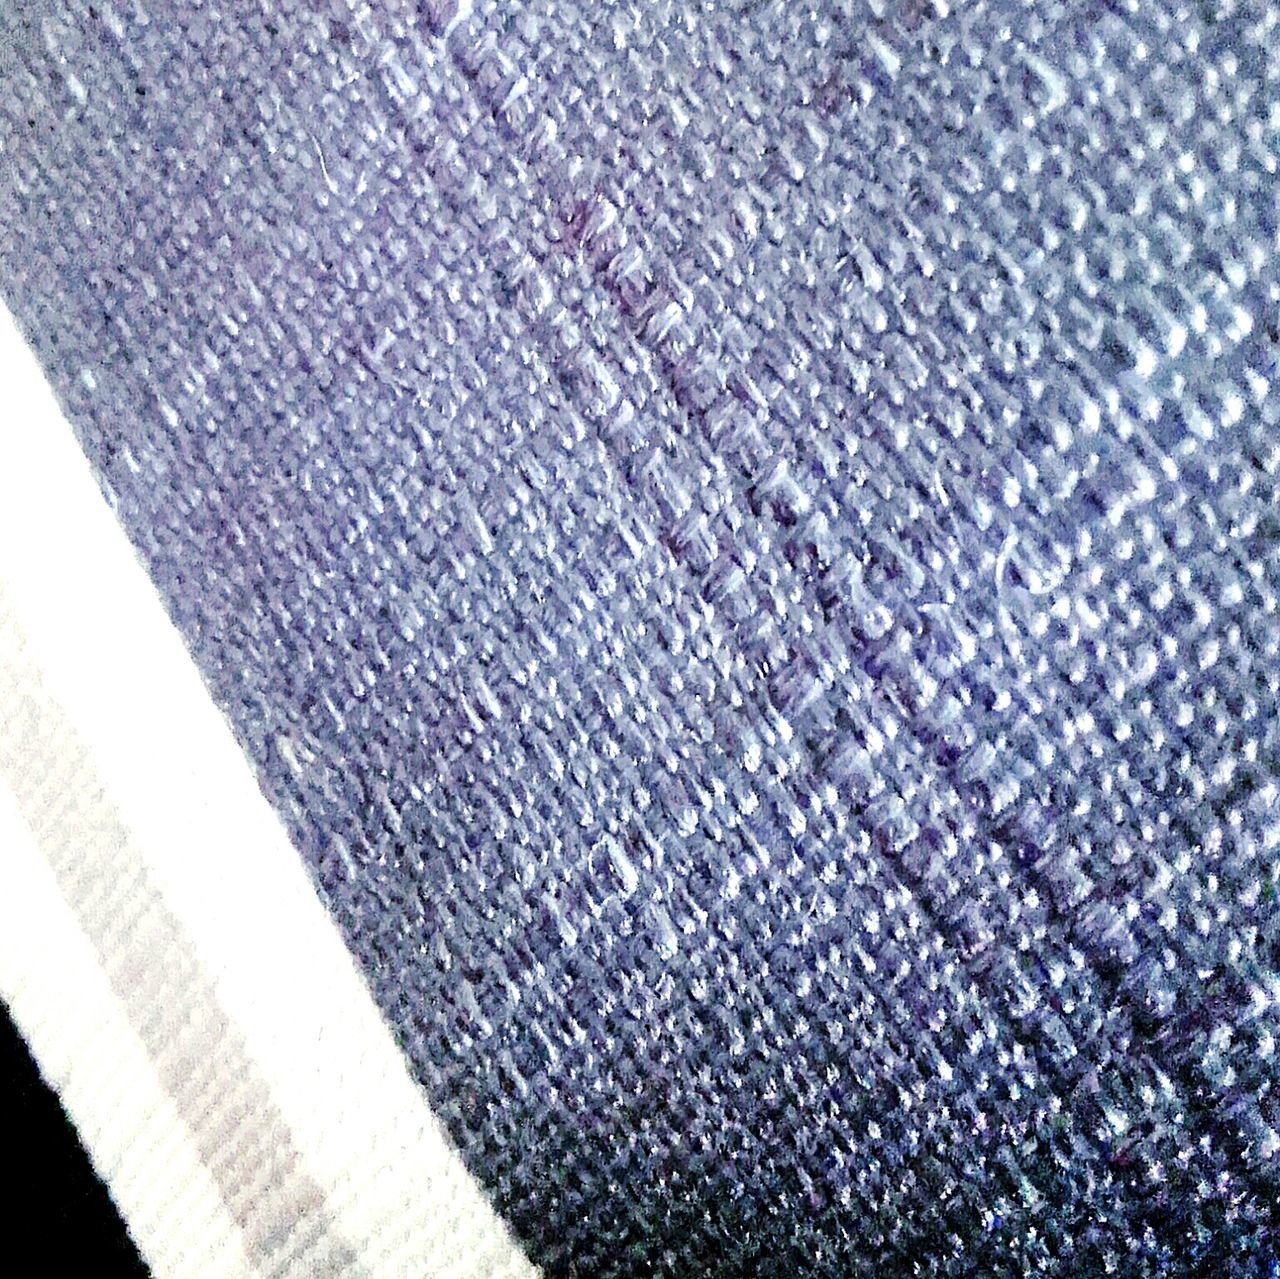 textile, textured, backgrounds, fabric, indoors, full frame, no people, close-up, industry, day